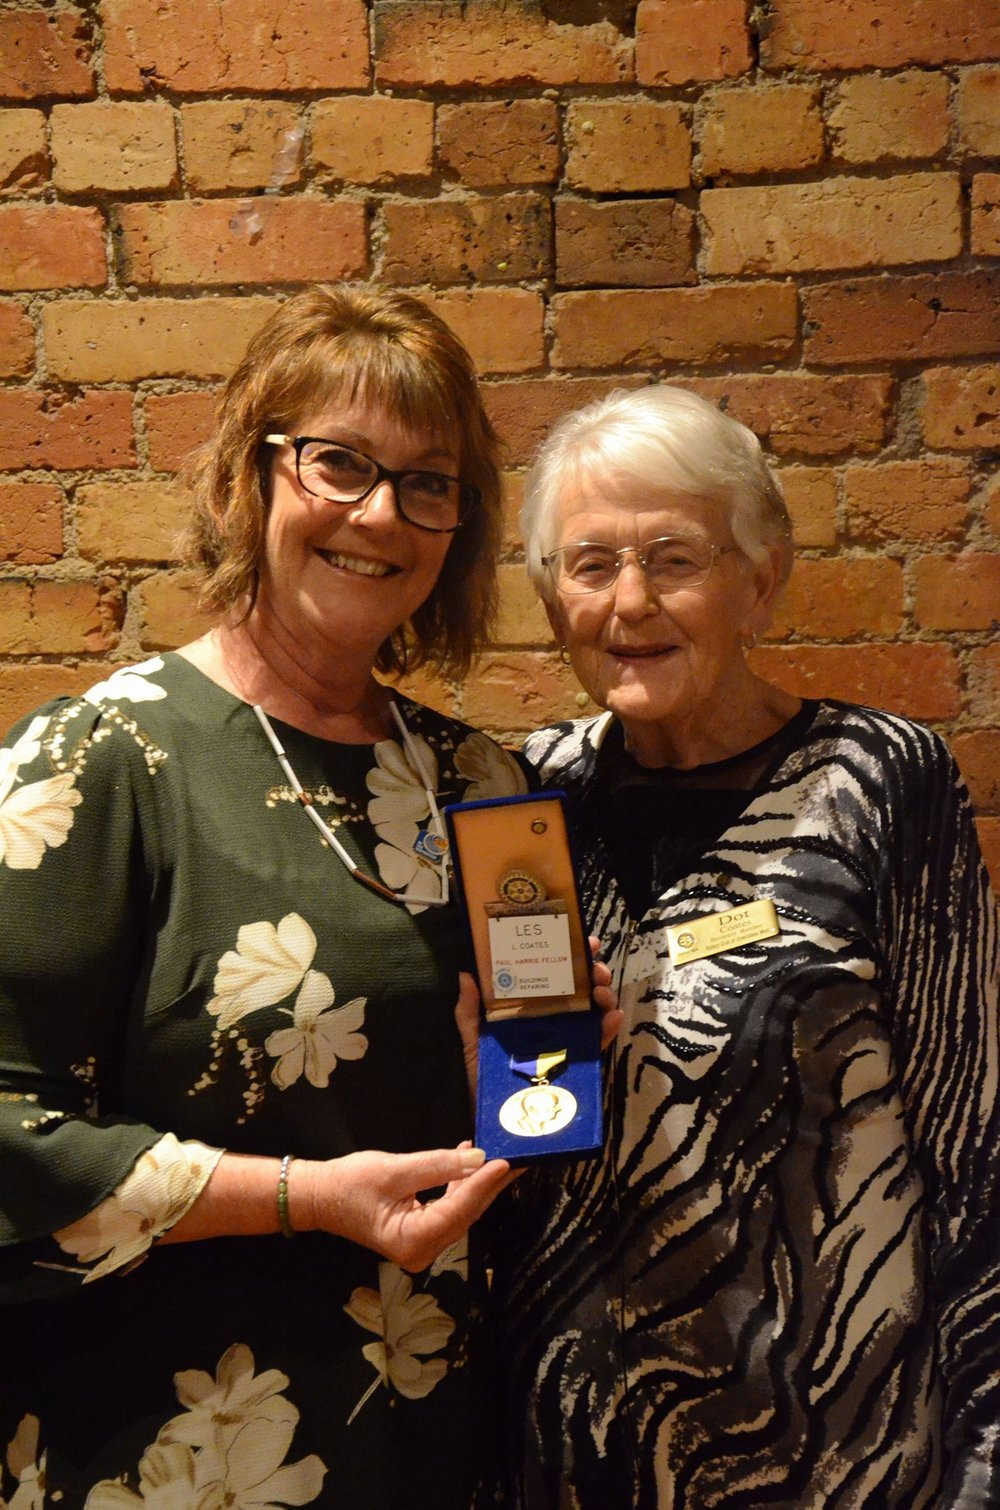 Julie Jacobson (left) proudly taking on the presidency of the Rotary Club of Ulverstone West, whilst acknowledging her late father who was a charter member and a Paul Harris Fellow. Julie's mum, Dot Coates, an honorary member, was also there to celebrate.